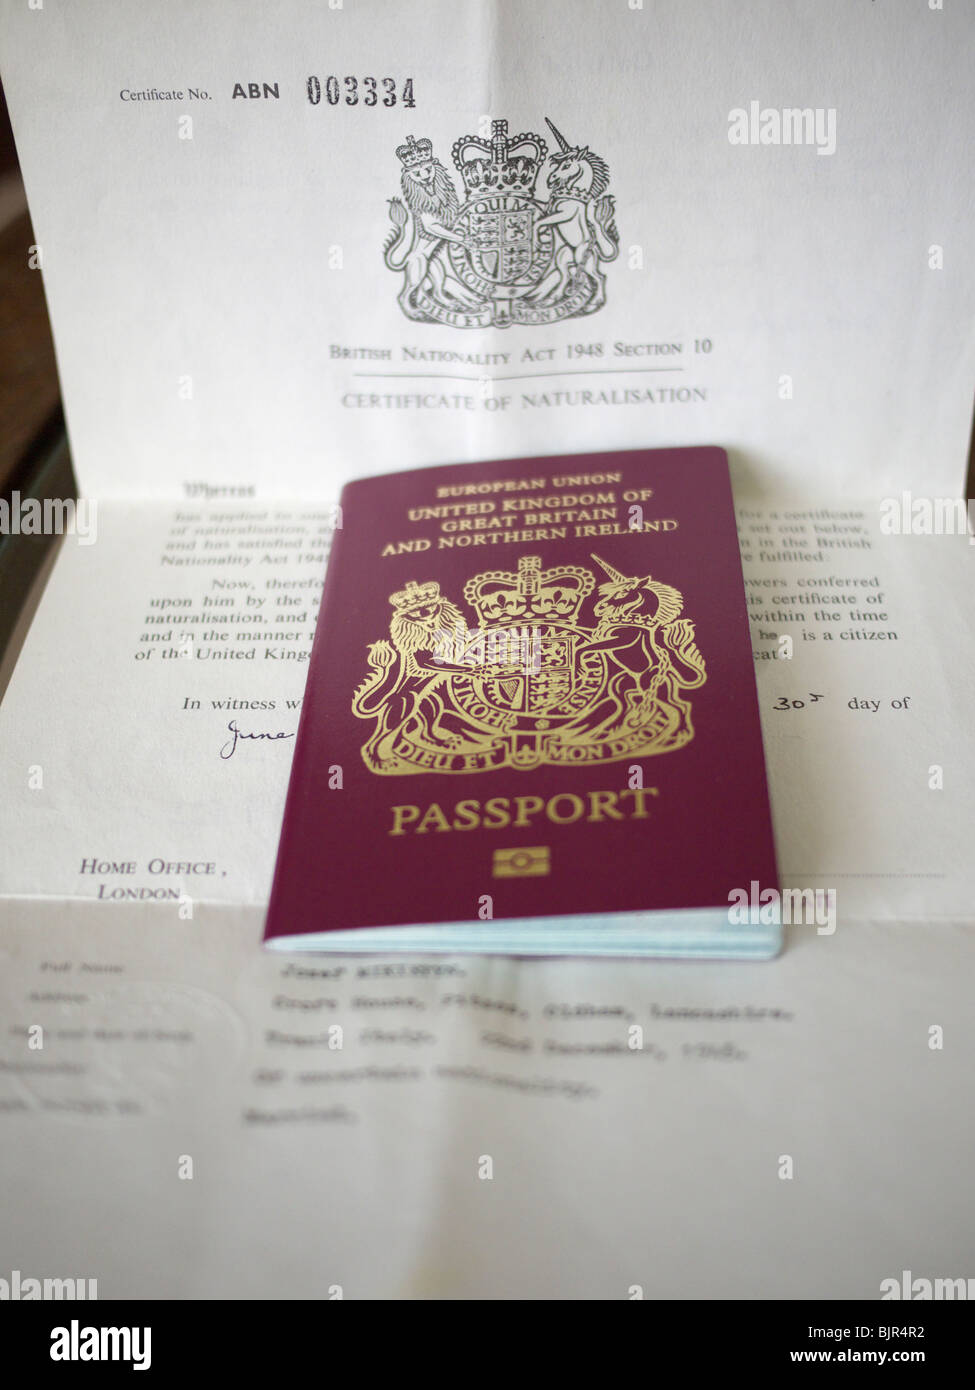 Passport with certificate of Naturalization. England UK. - Stock Image